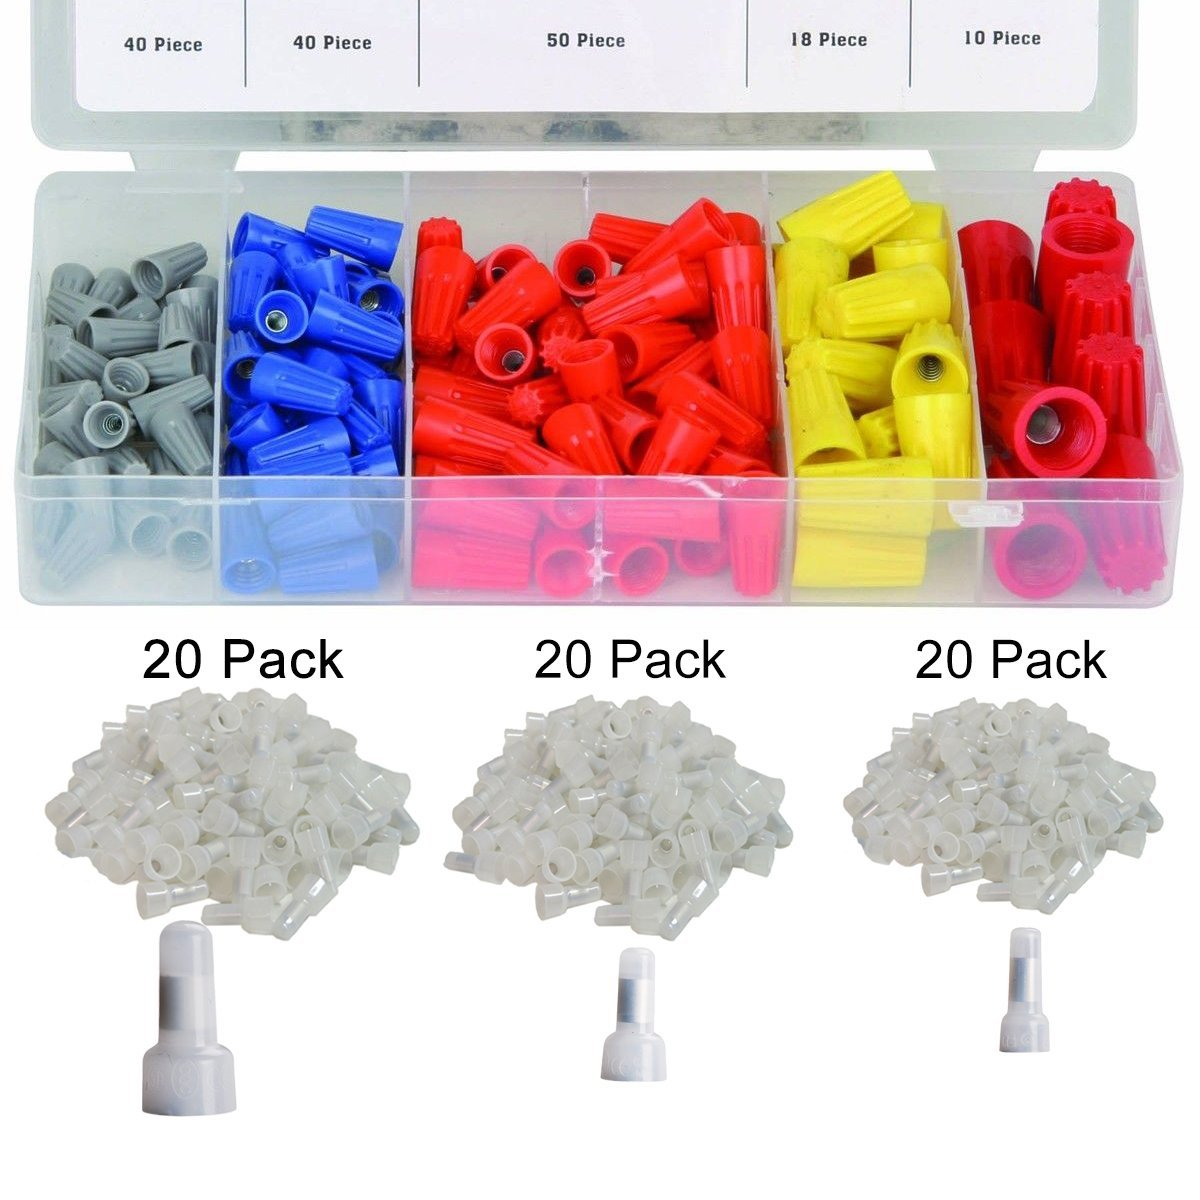 Wire Nut Assortment with Nylon Wire Crimp Cap - 158pcs #22-16 AWG Twist on Wire Nuts with Spring Inserted, 60pcs 22-16/16-14/12-10 AWG Closed End Crimp Terminal Connectors, Used on Wiring Projects